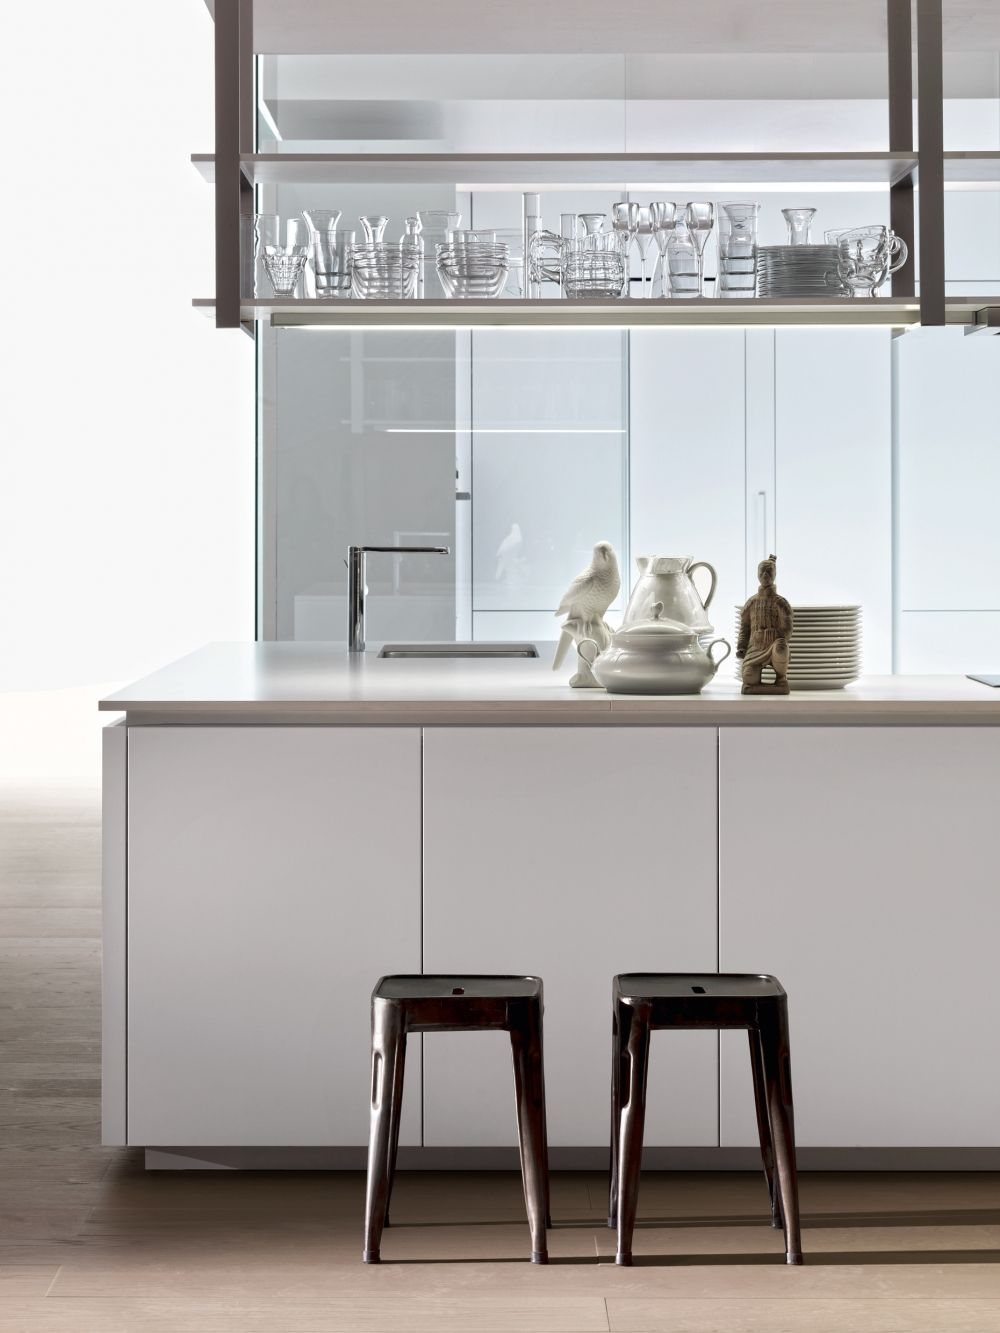 dada hi line 6 kitchen designed by ferruccio laviani a unitary project simple and linear on kitchen floating shelves id=40907